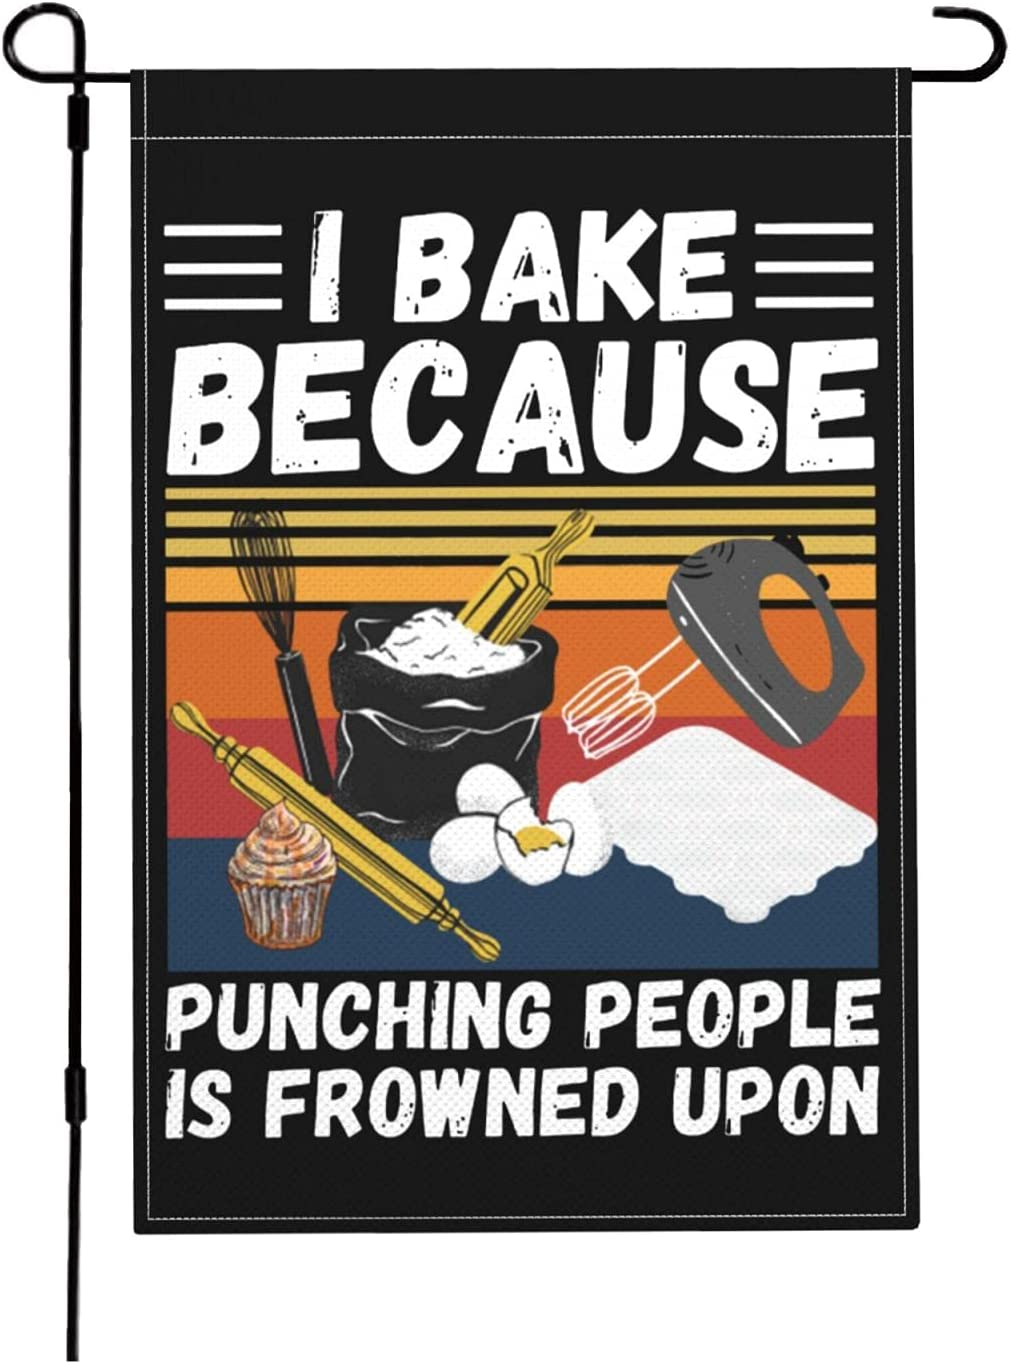 I Bake Because Punching People is Frowned Upon-6 Garden Flag, Double Sided 18x12 Inch Flags Resistant Linen-Like Fabric Outdoor Flag Yard Flag